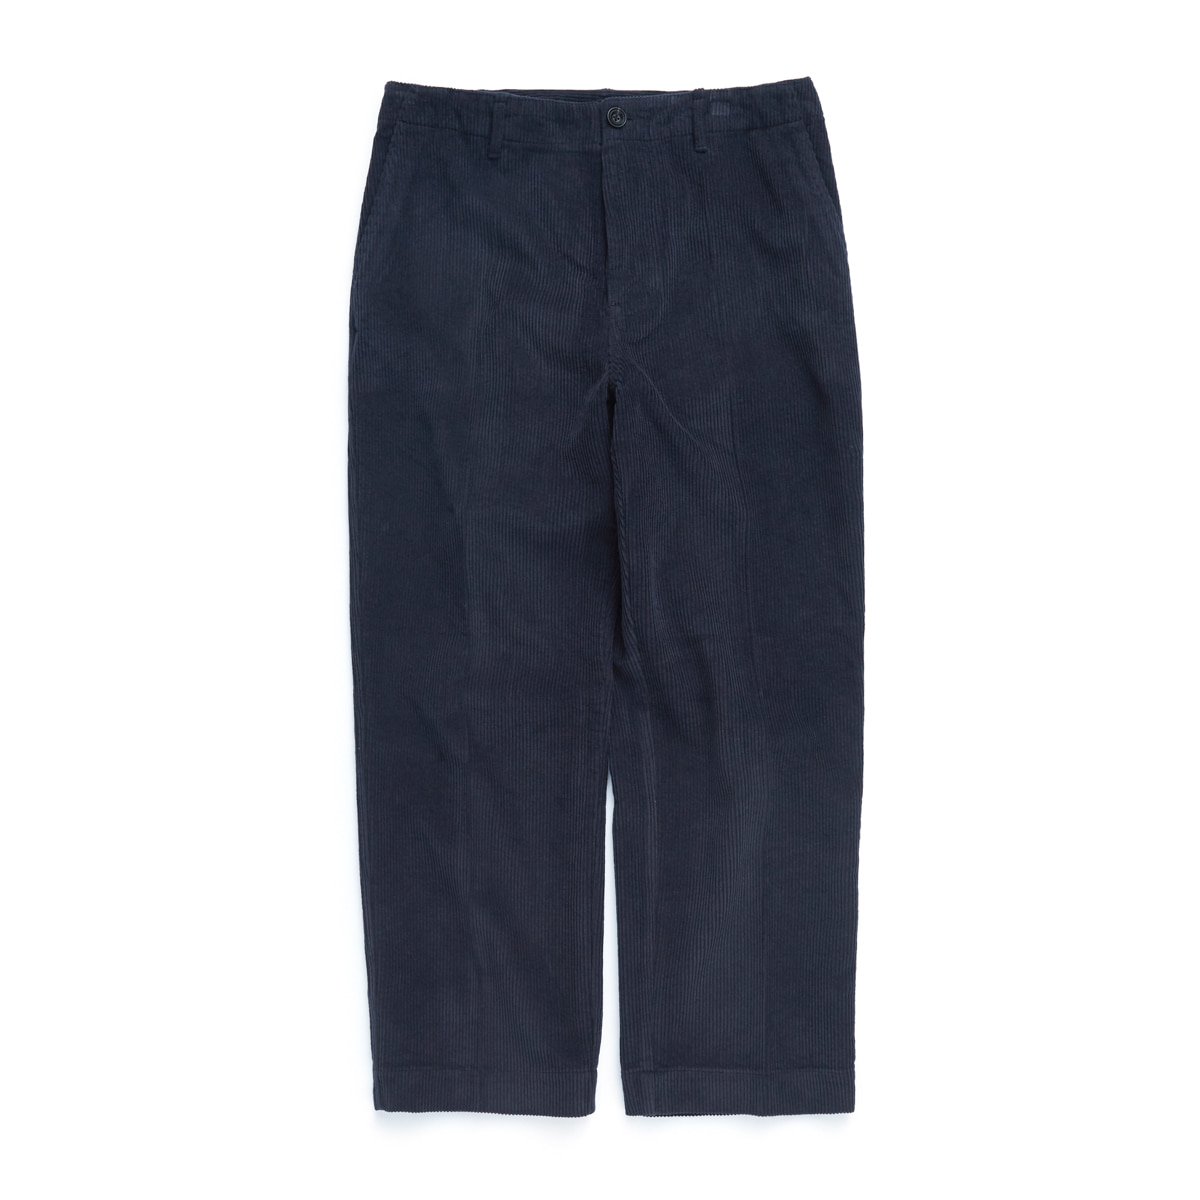 언어펙티드 LOOSE PANTS (Navy corduroy)